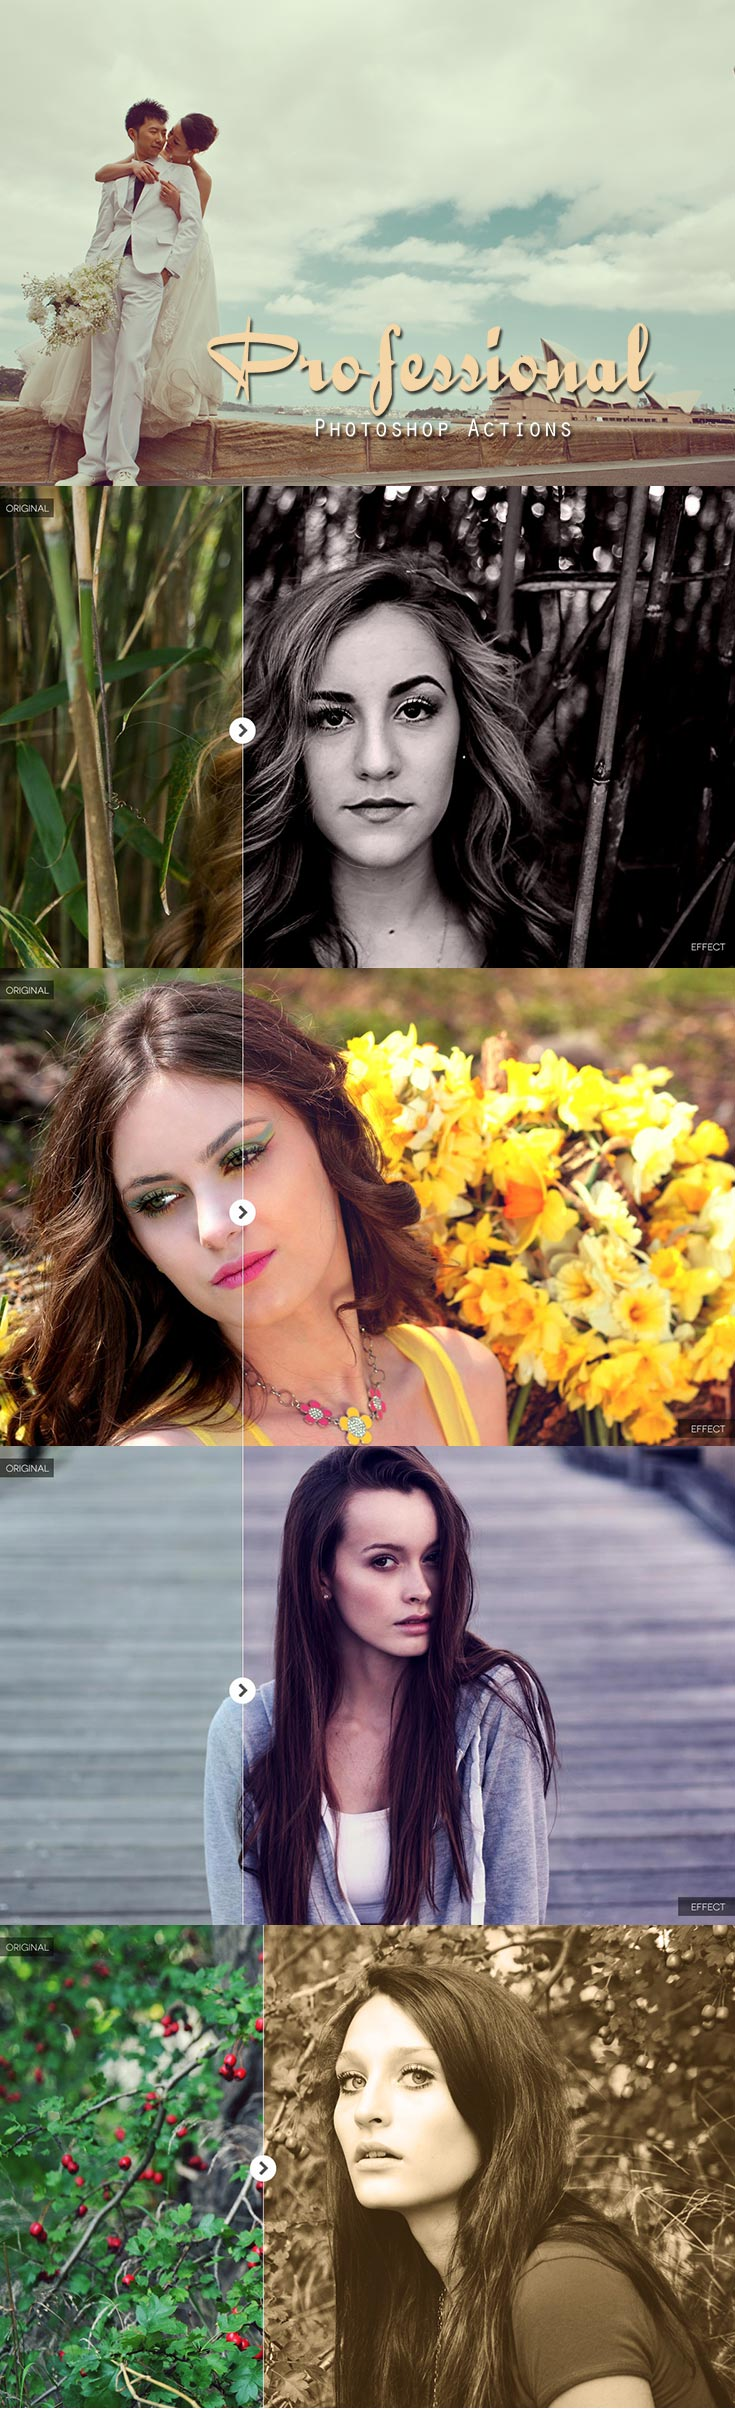 30 Free Professional Photoshop Actions